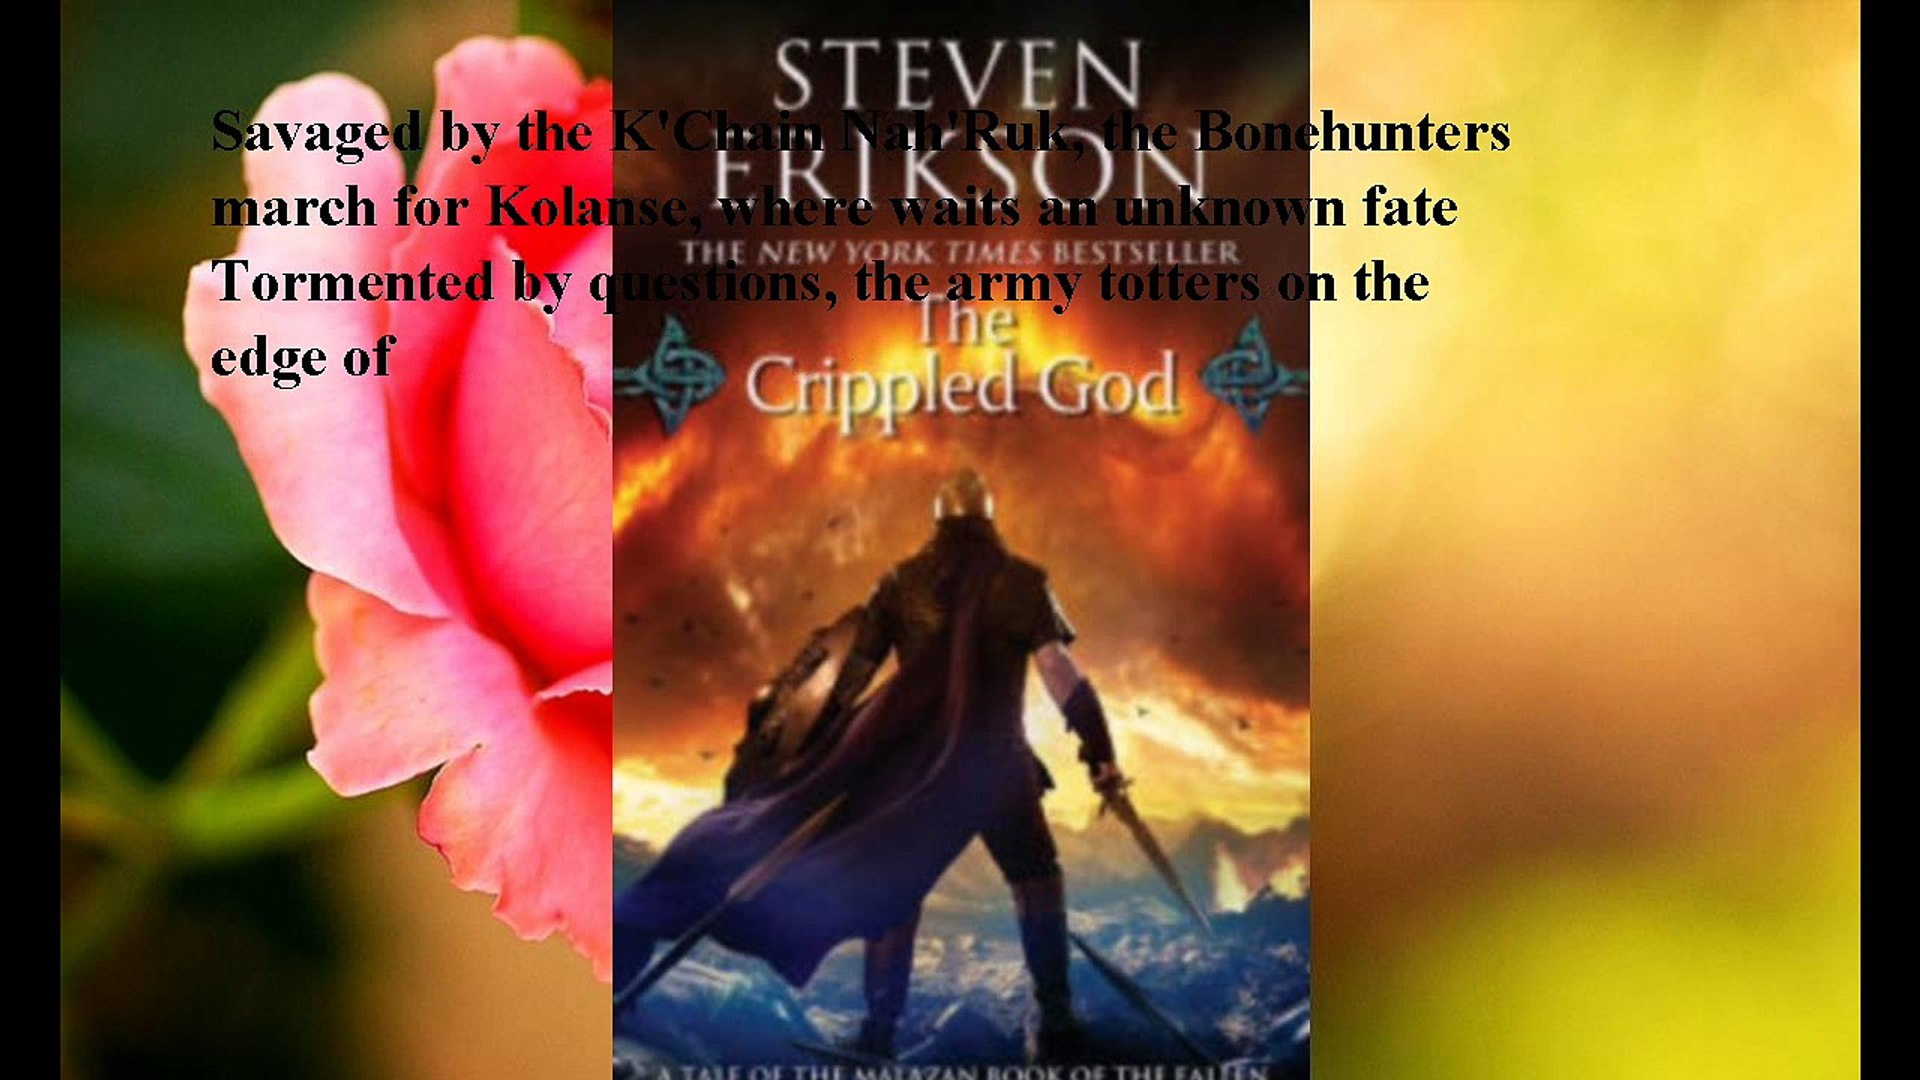 Download The Crippled God Malazan Book Of The Fallen Series 10